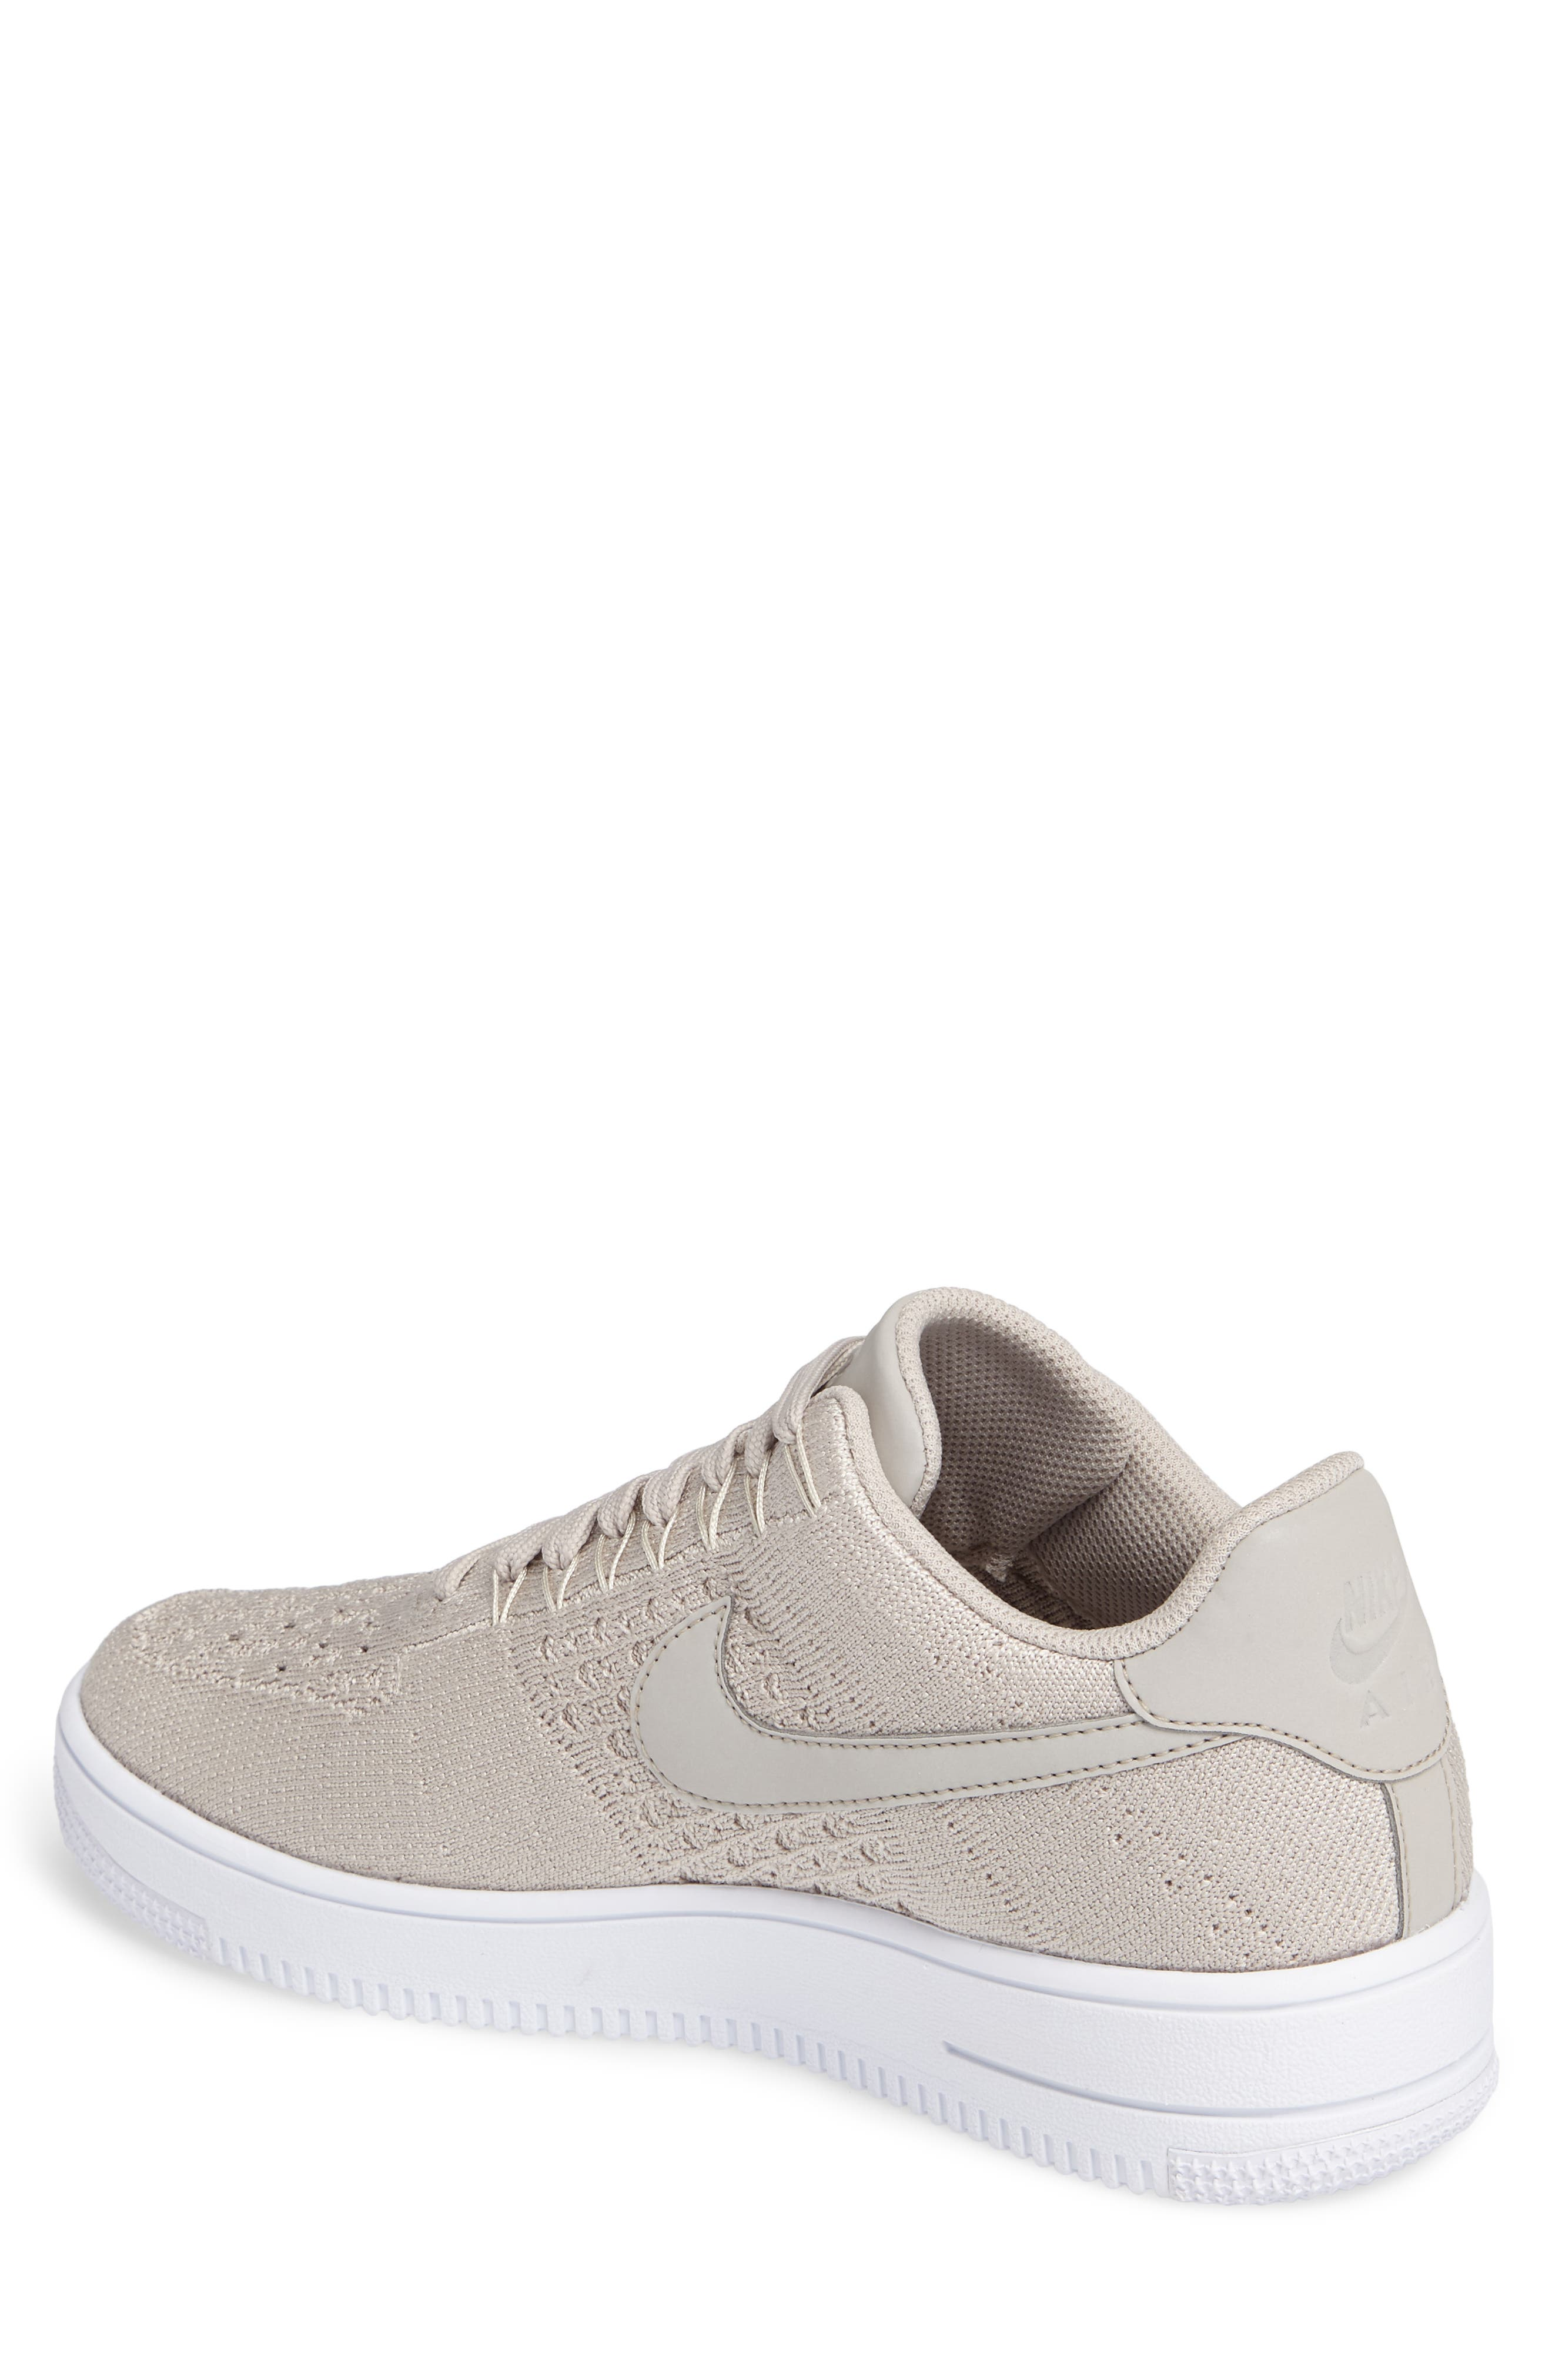 Air Force 1 Ultra Flyknit Low Sneaker,                             Alternate thumbnail 2, color,                             String/ String/ White